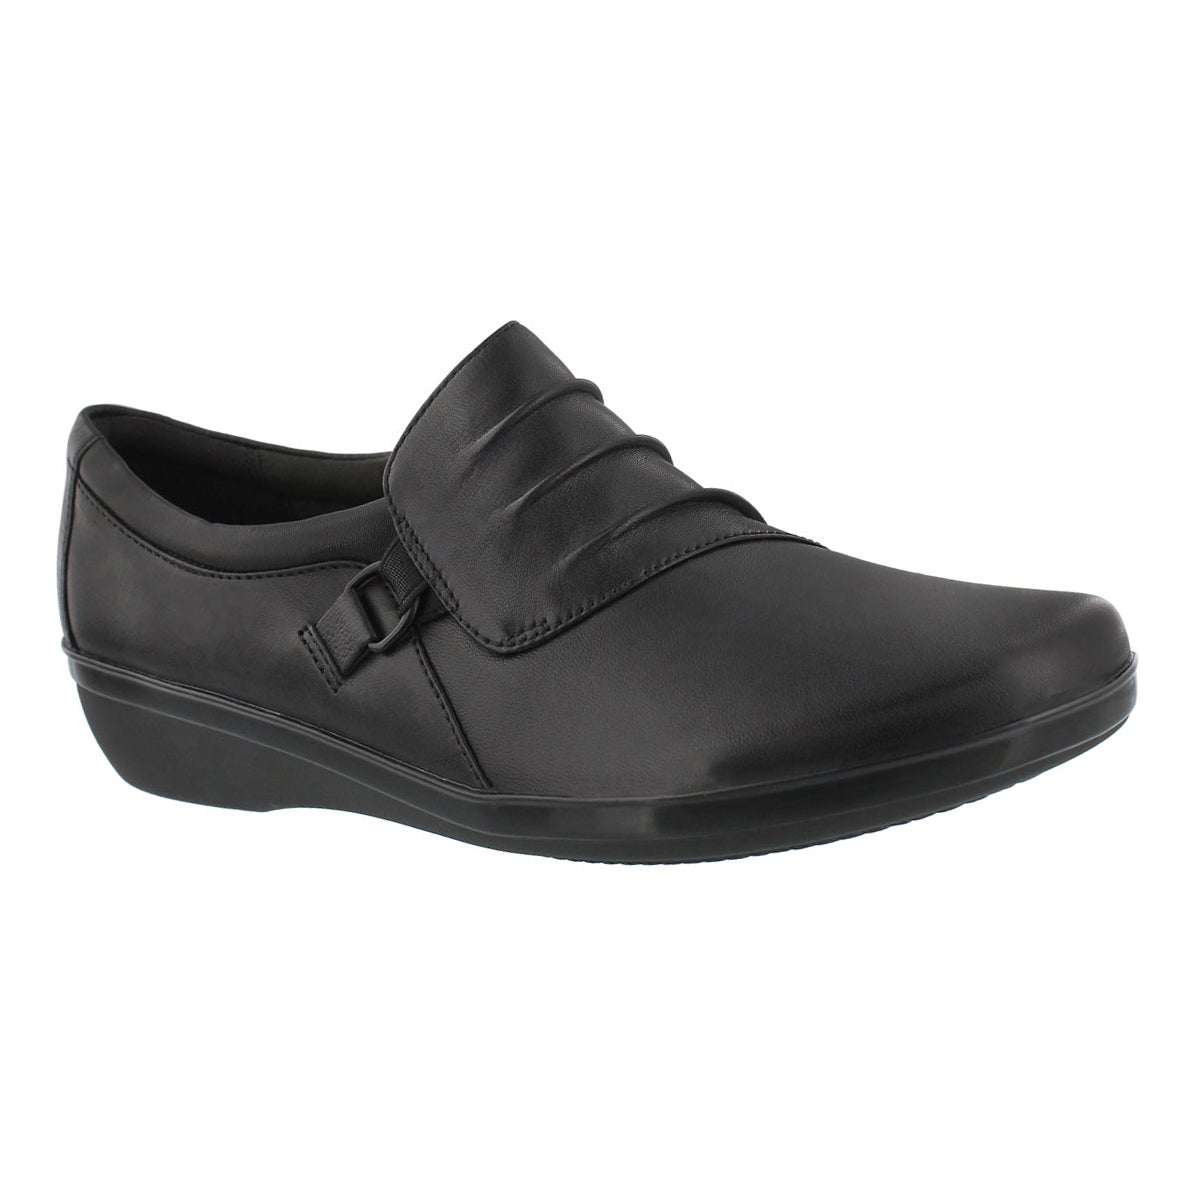 Women's EVERLAY HEIDI  black slip ons - Wide